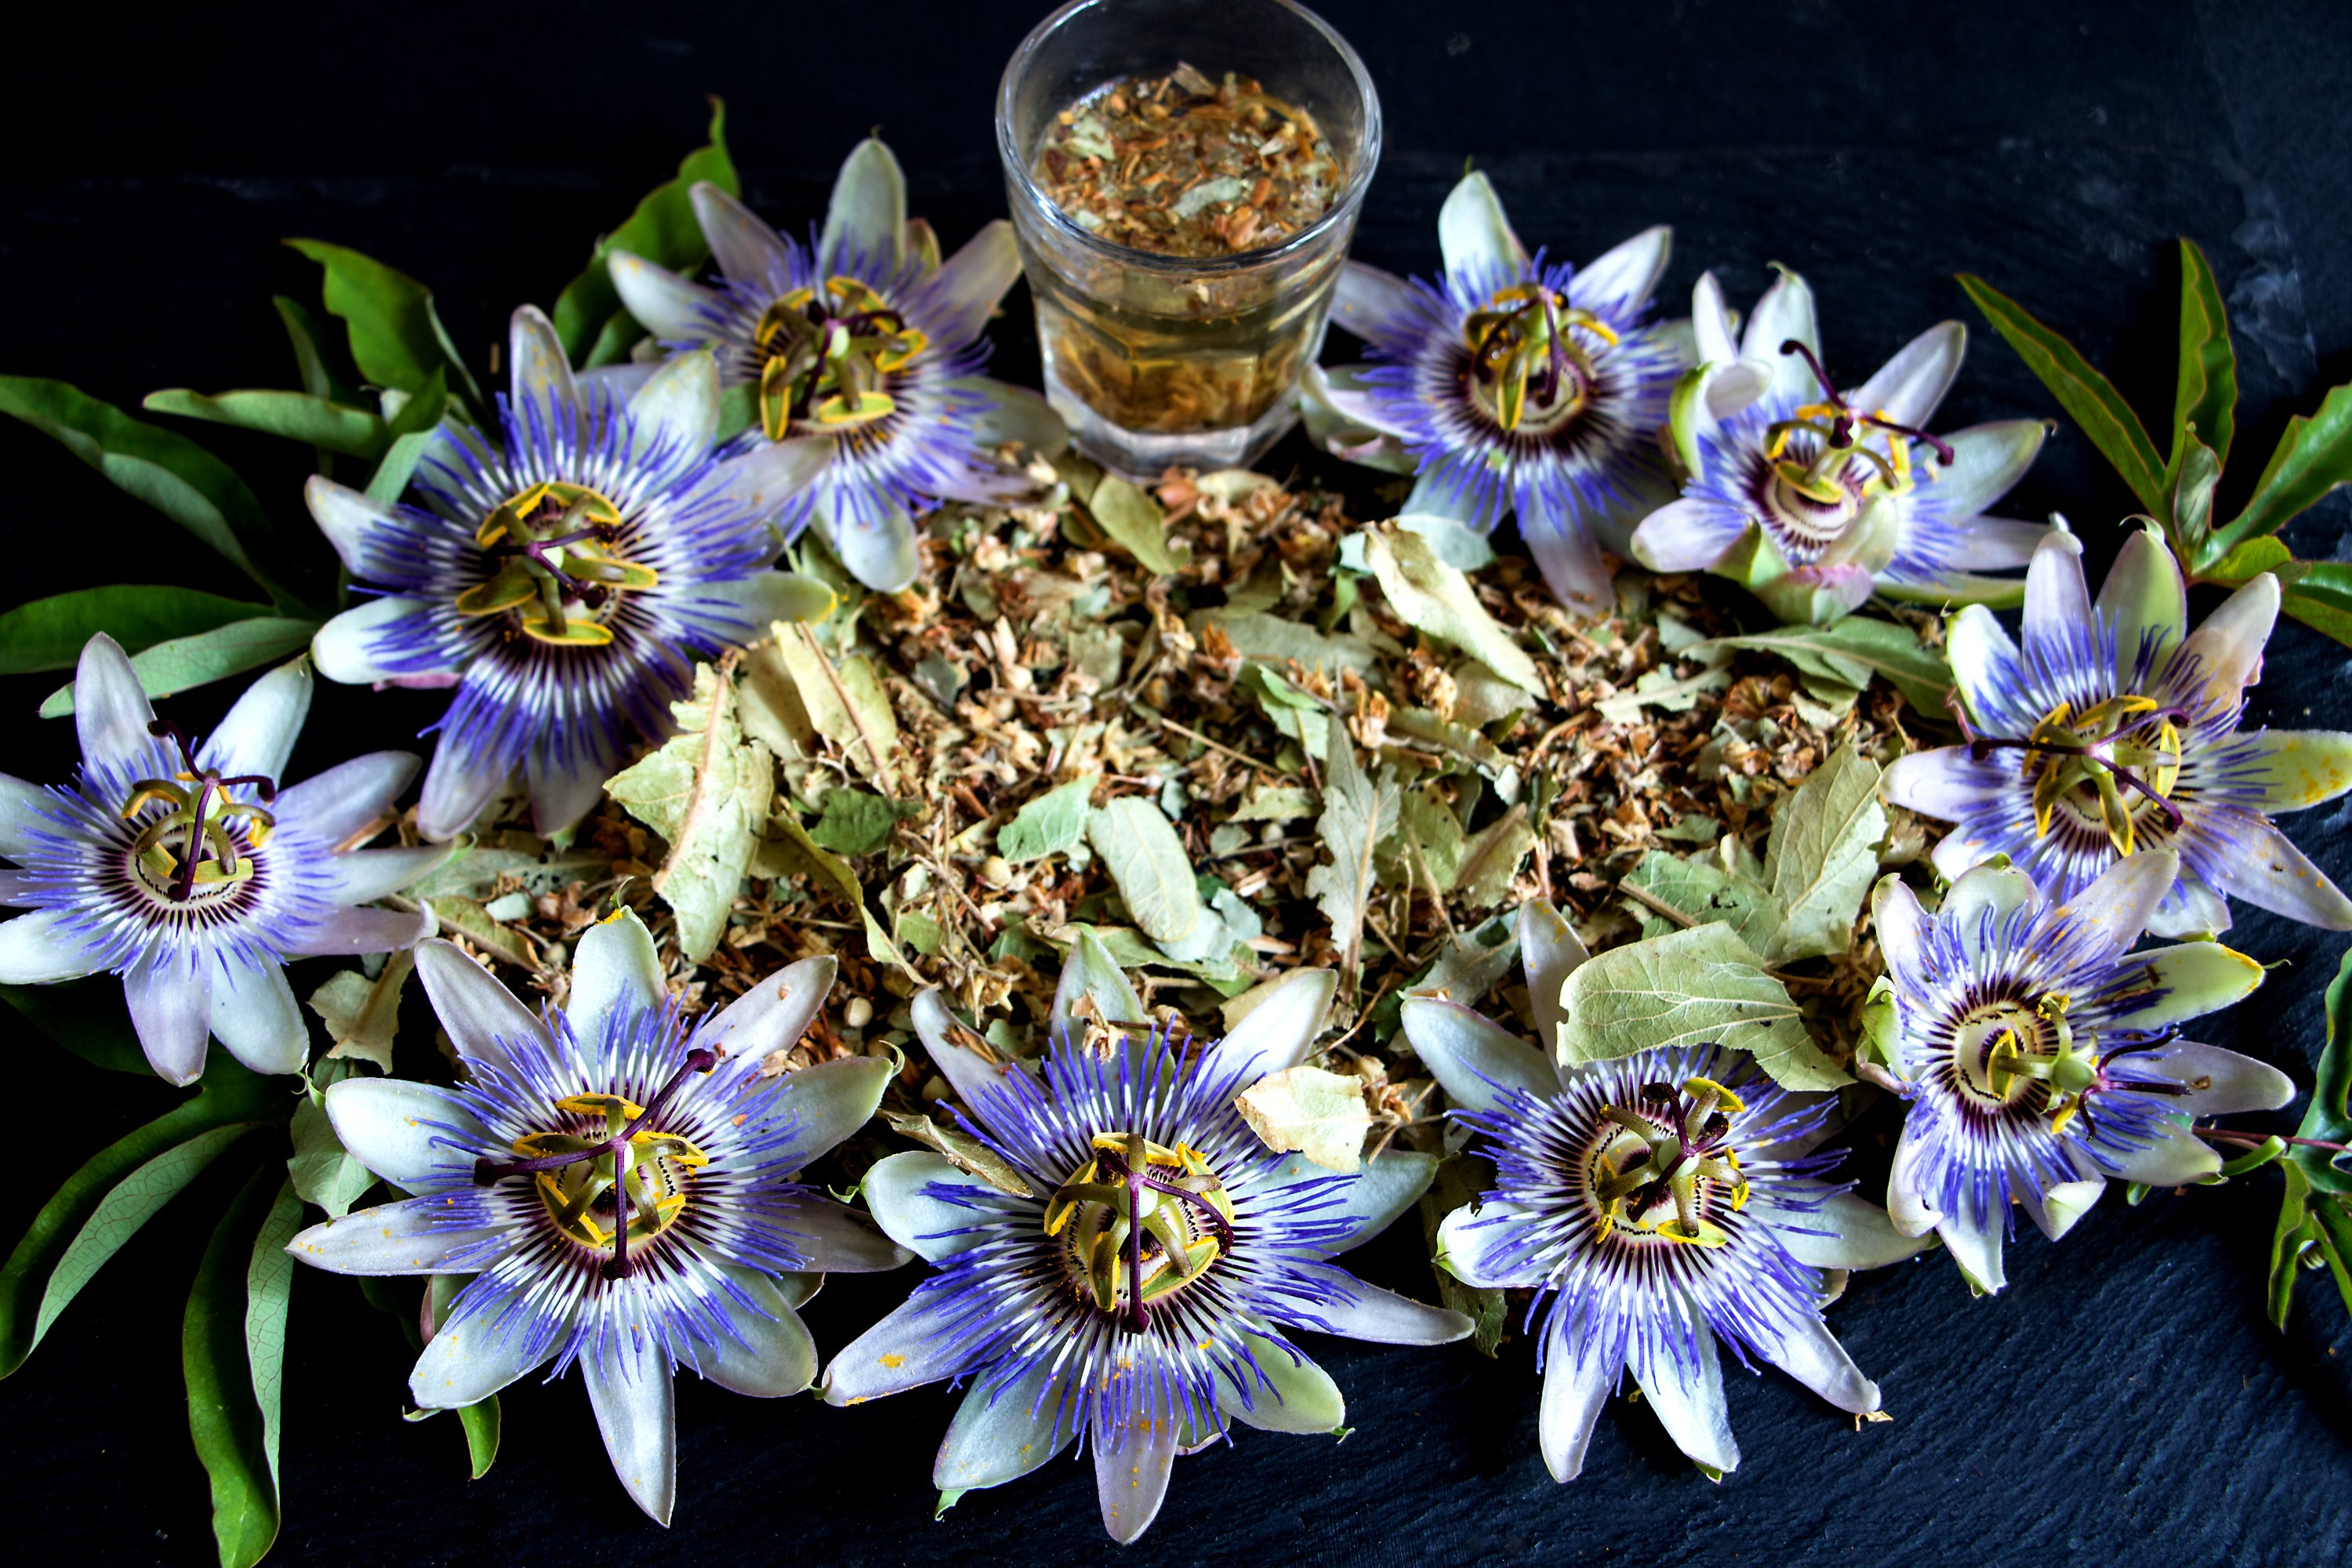 A cup of passionflower tea before bedtime could help increase total sleep time. (Shutterstock Photo)